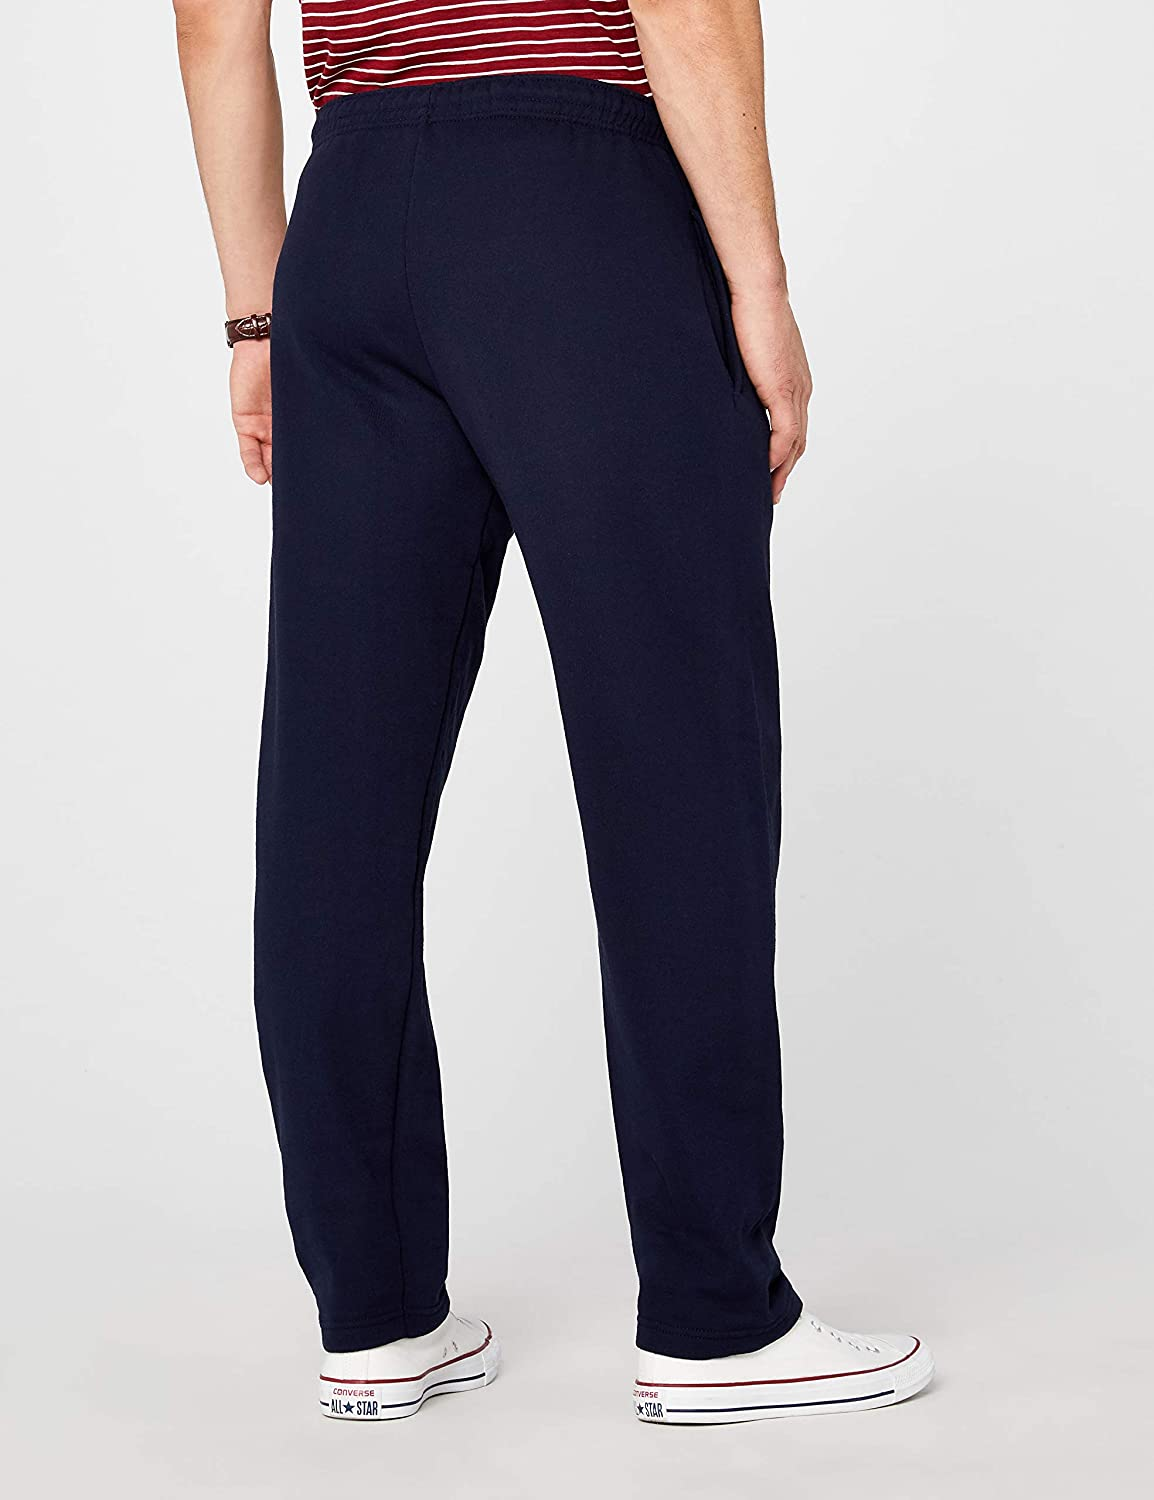 a5156808d51 Fruit of the Loom - Men's Jogging Pants: Amazon.co.uk: Clothing